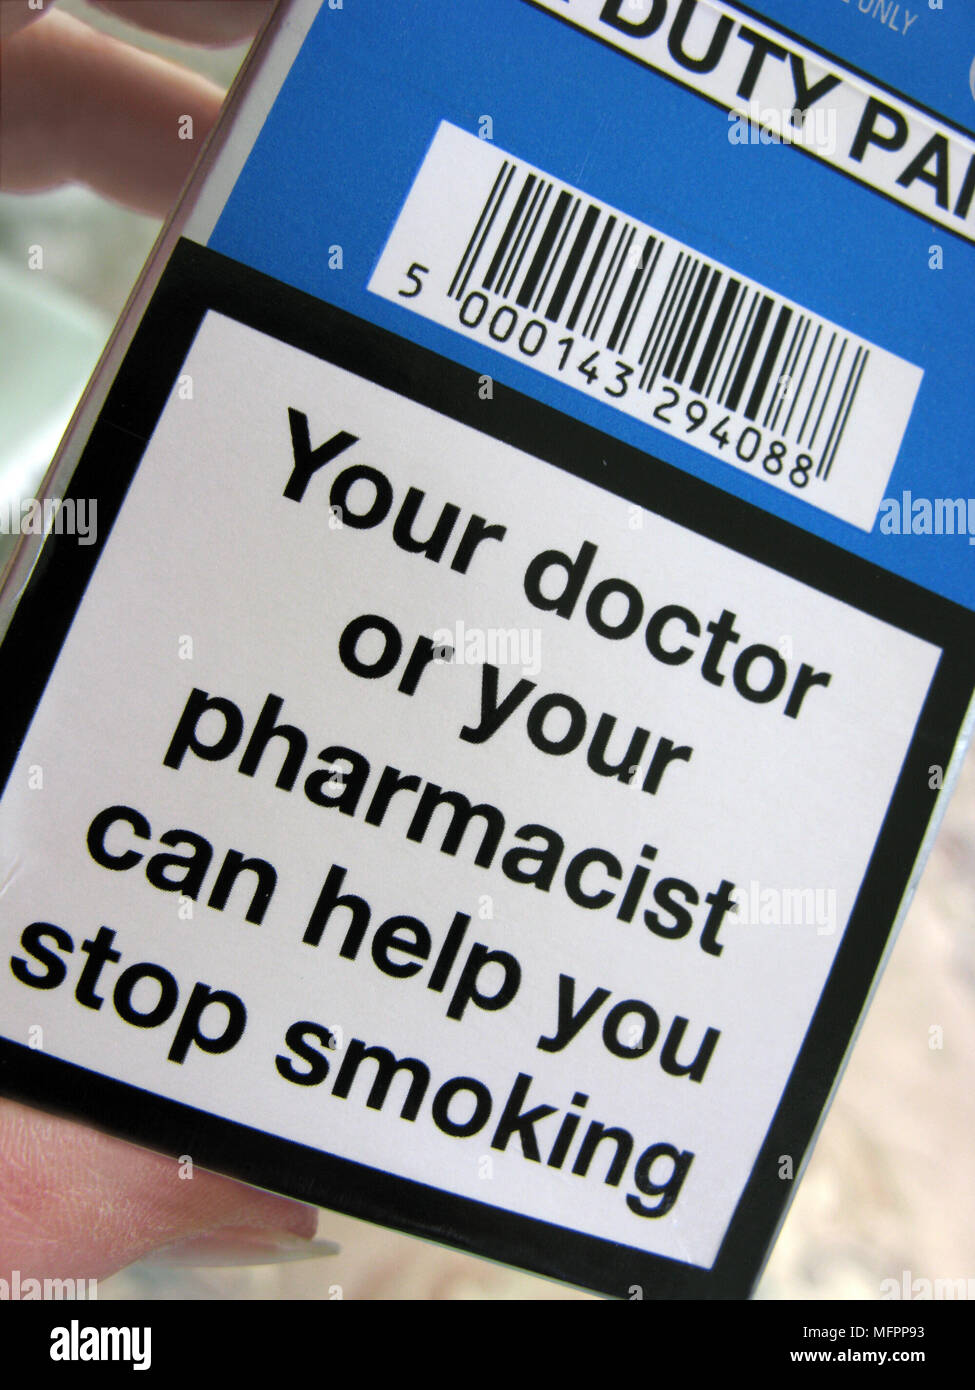 Woman reading a cigarette packet with a warning on, indicating a doctor or pharmacist can help you to quit smoking - Stock Image